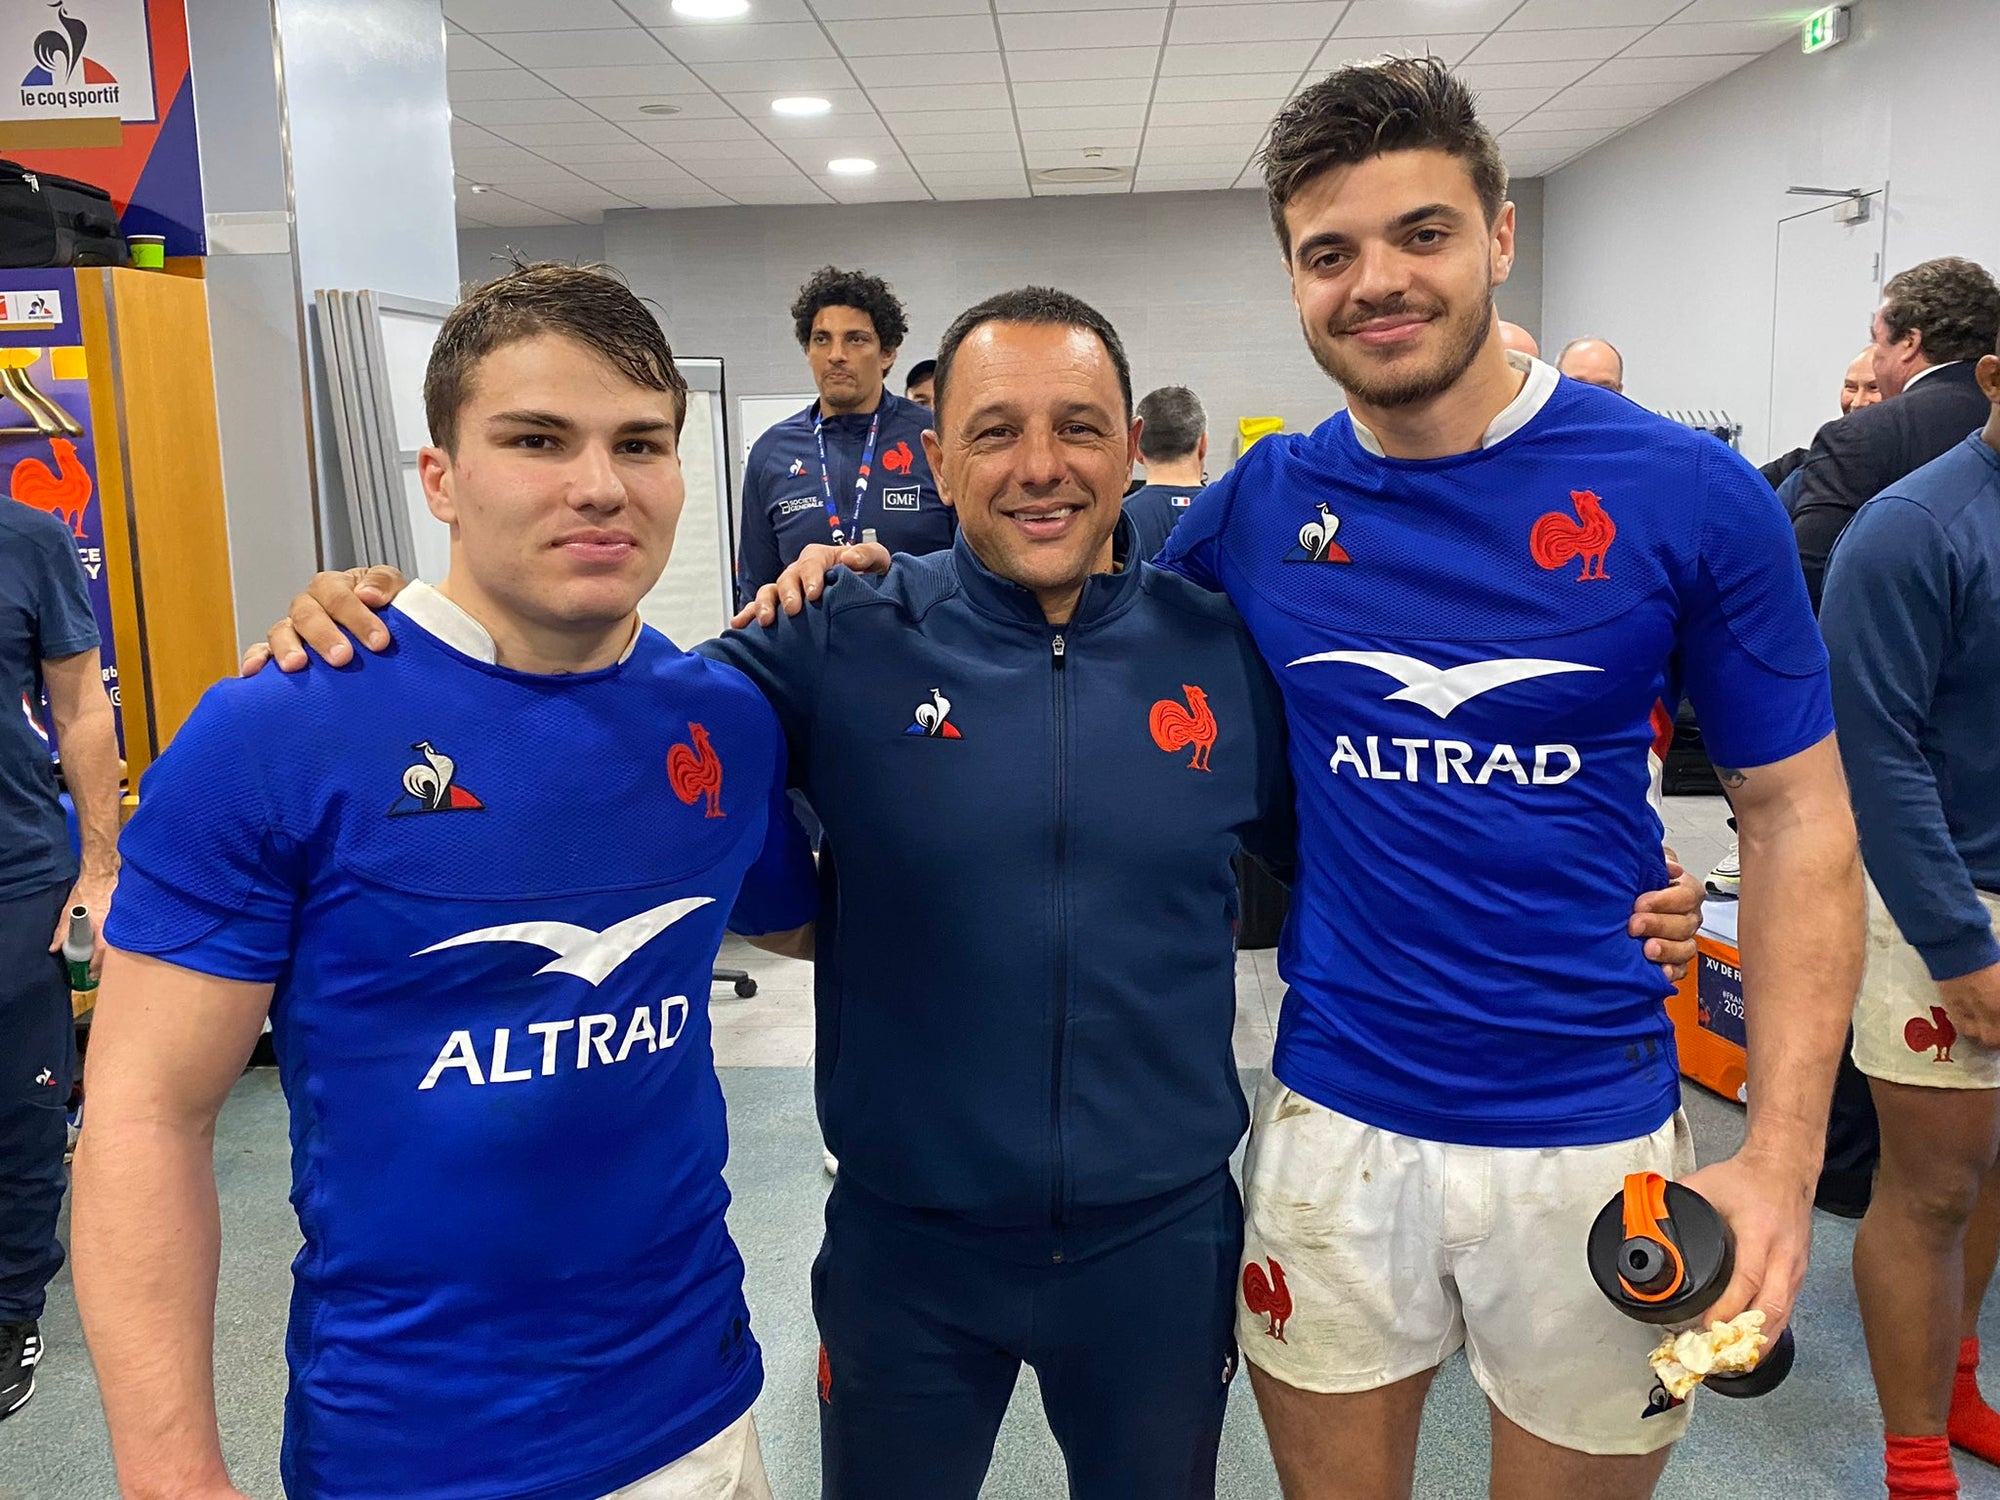 French Rugby National Team Kicking Coach Vlok Cillers